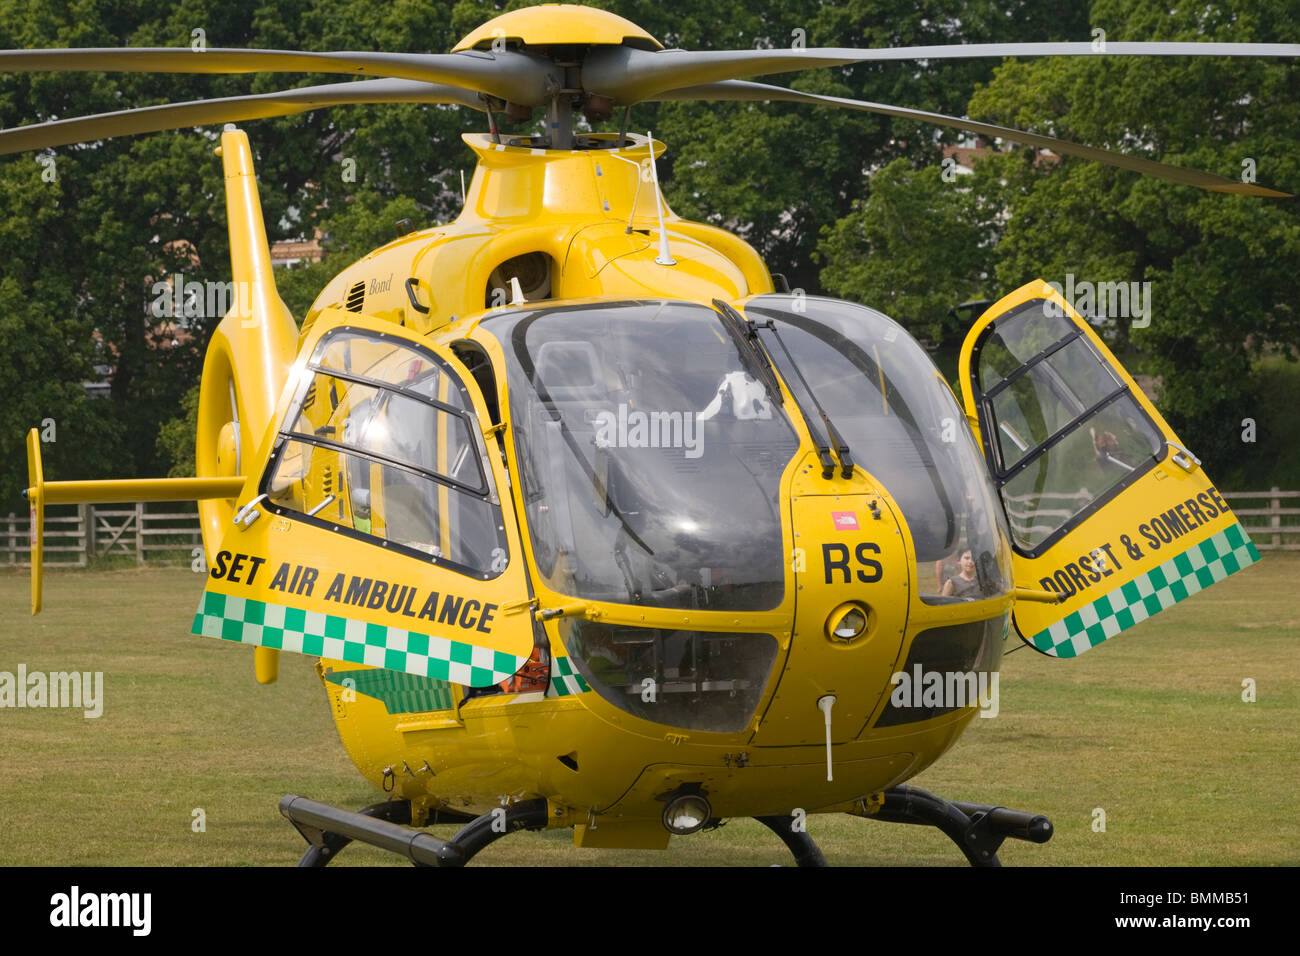 Dorset und Somerset Air Ambulance Helikopter (Eurocopter EC 135 T2 +) Stockbild